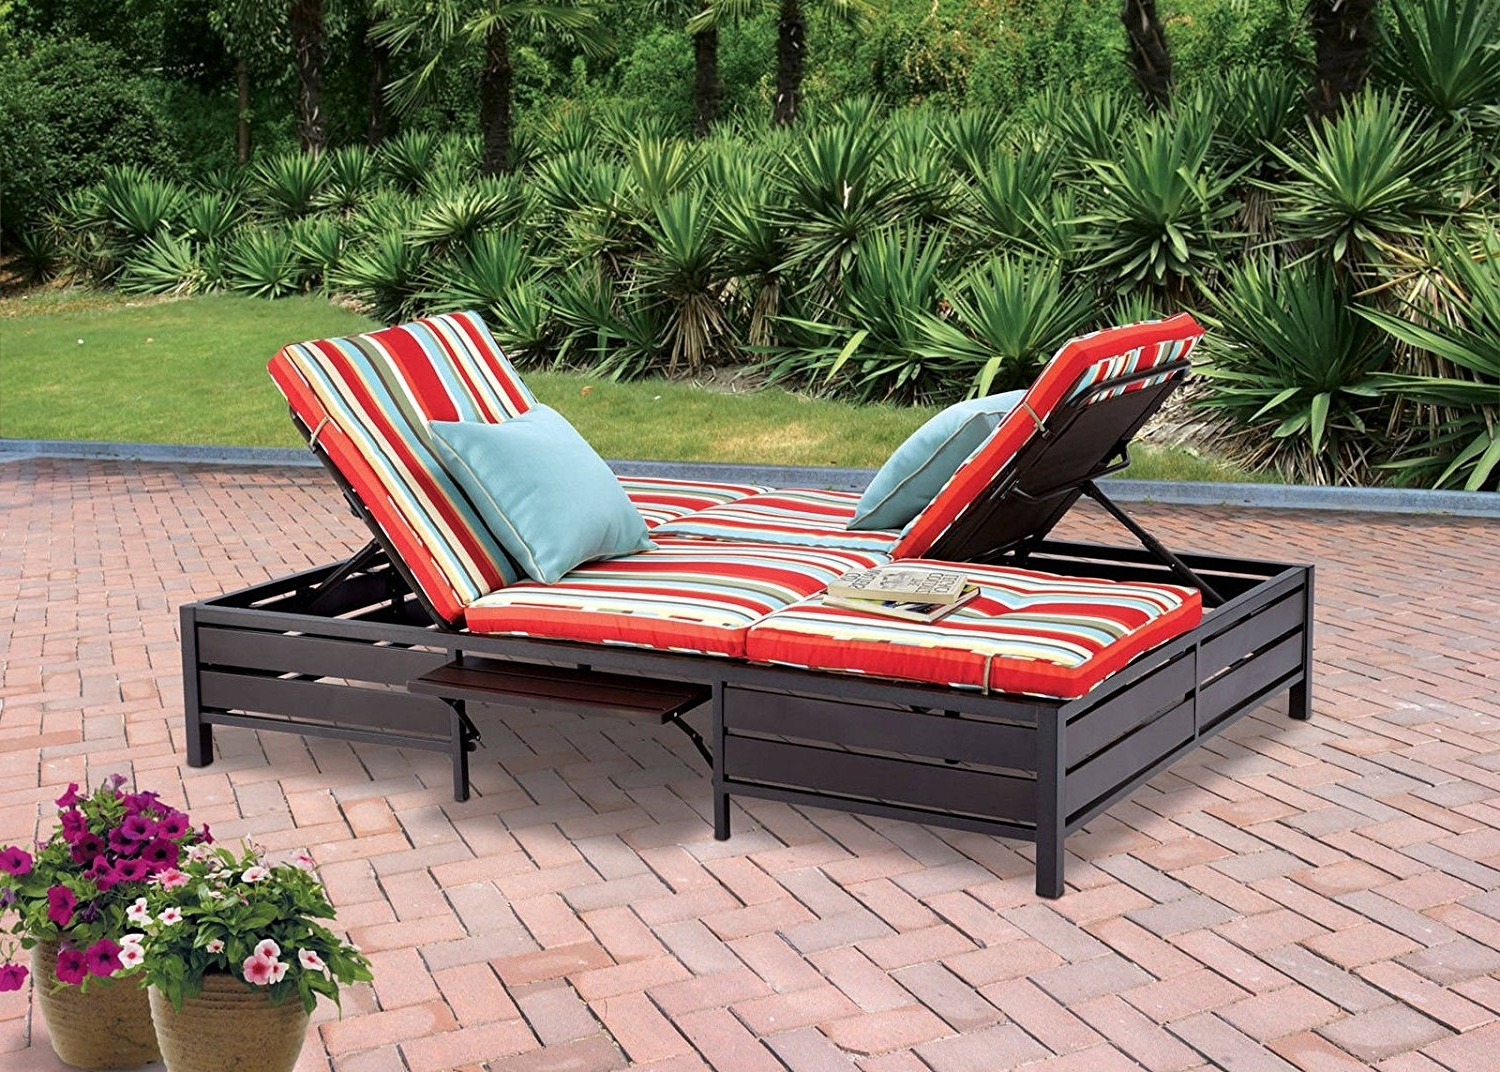 Amazon : Double Chaise Lounger – This Red Stripe Outdoor With Regard To Recent Double Chaise Lounge Chairs (View 8 of 15)